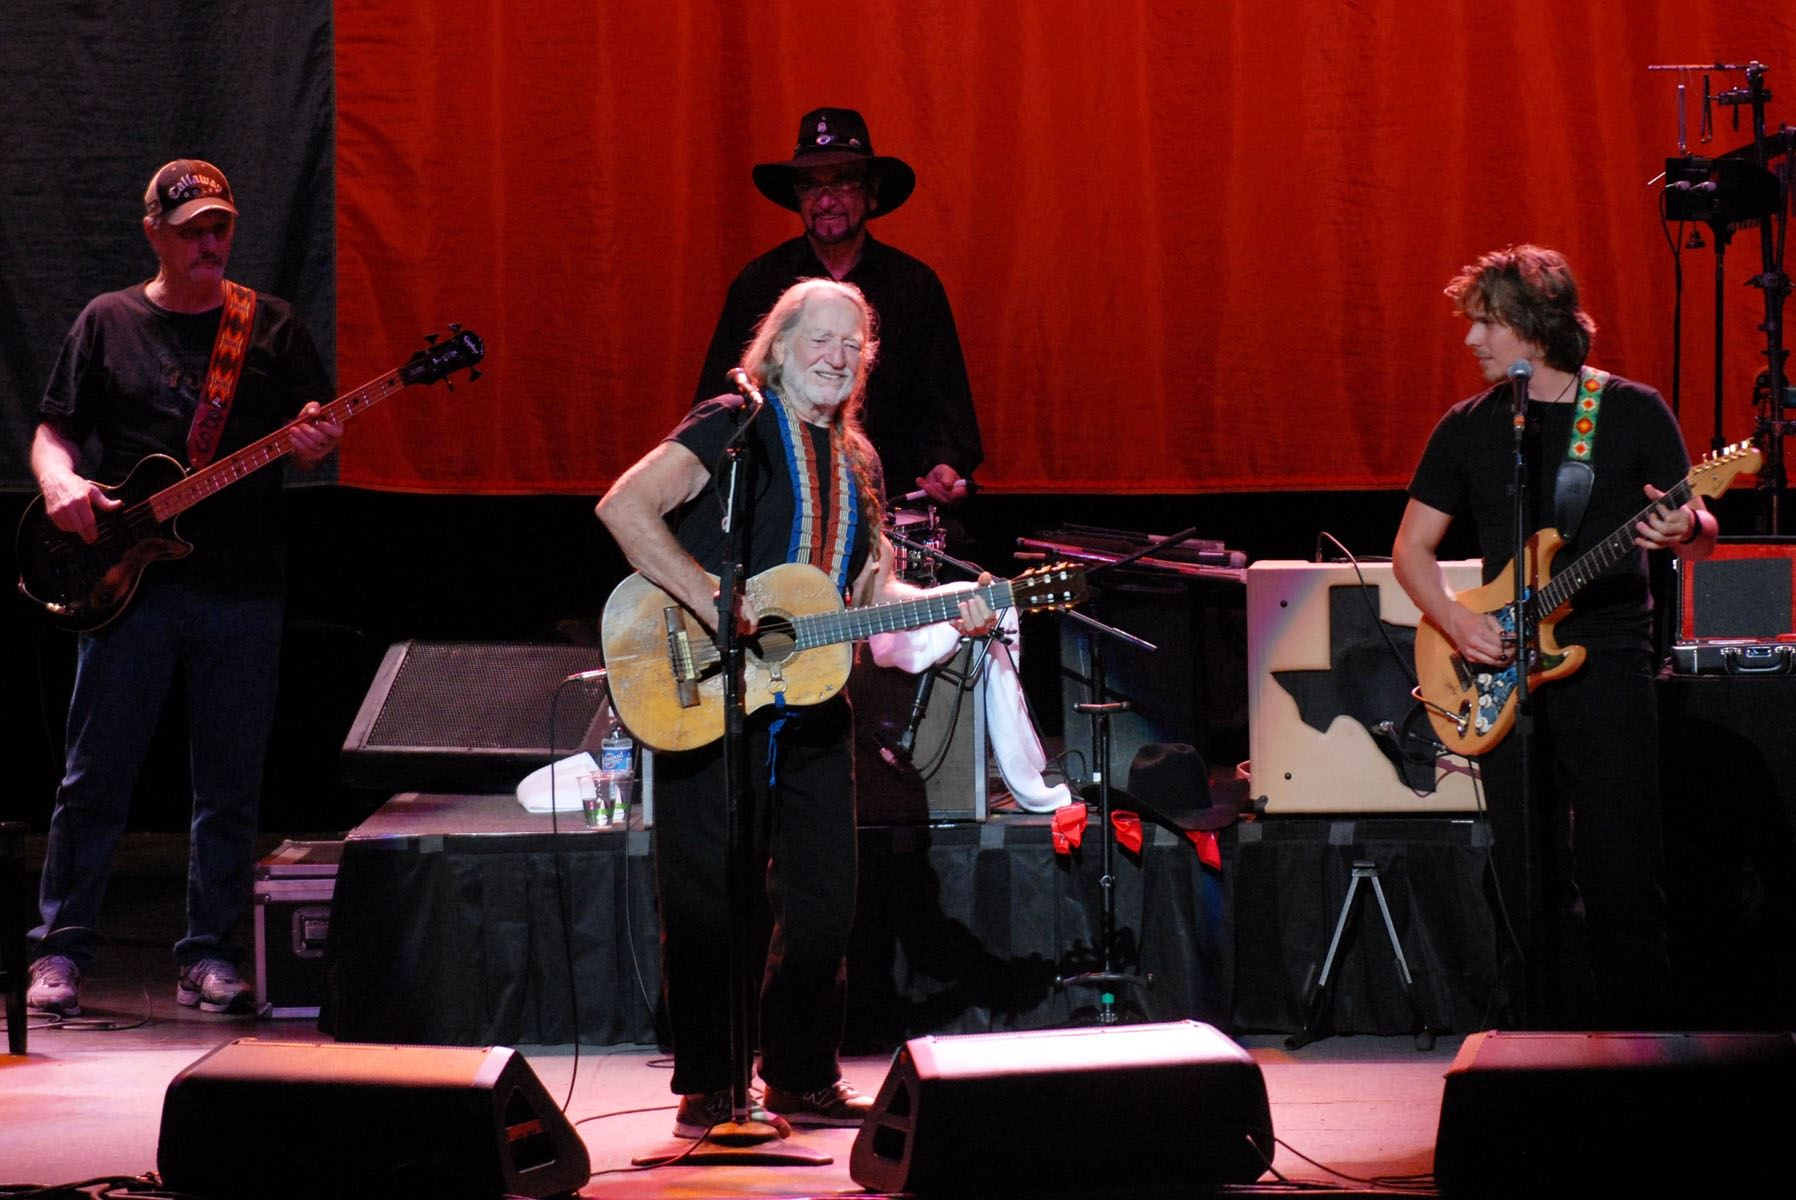 WillieNelson-psresize2-Athens012110